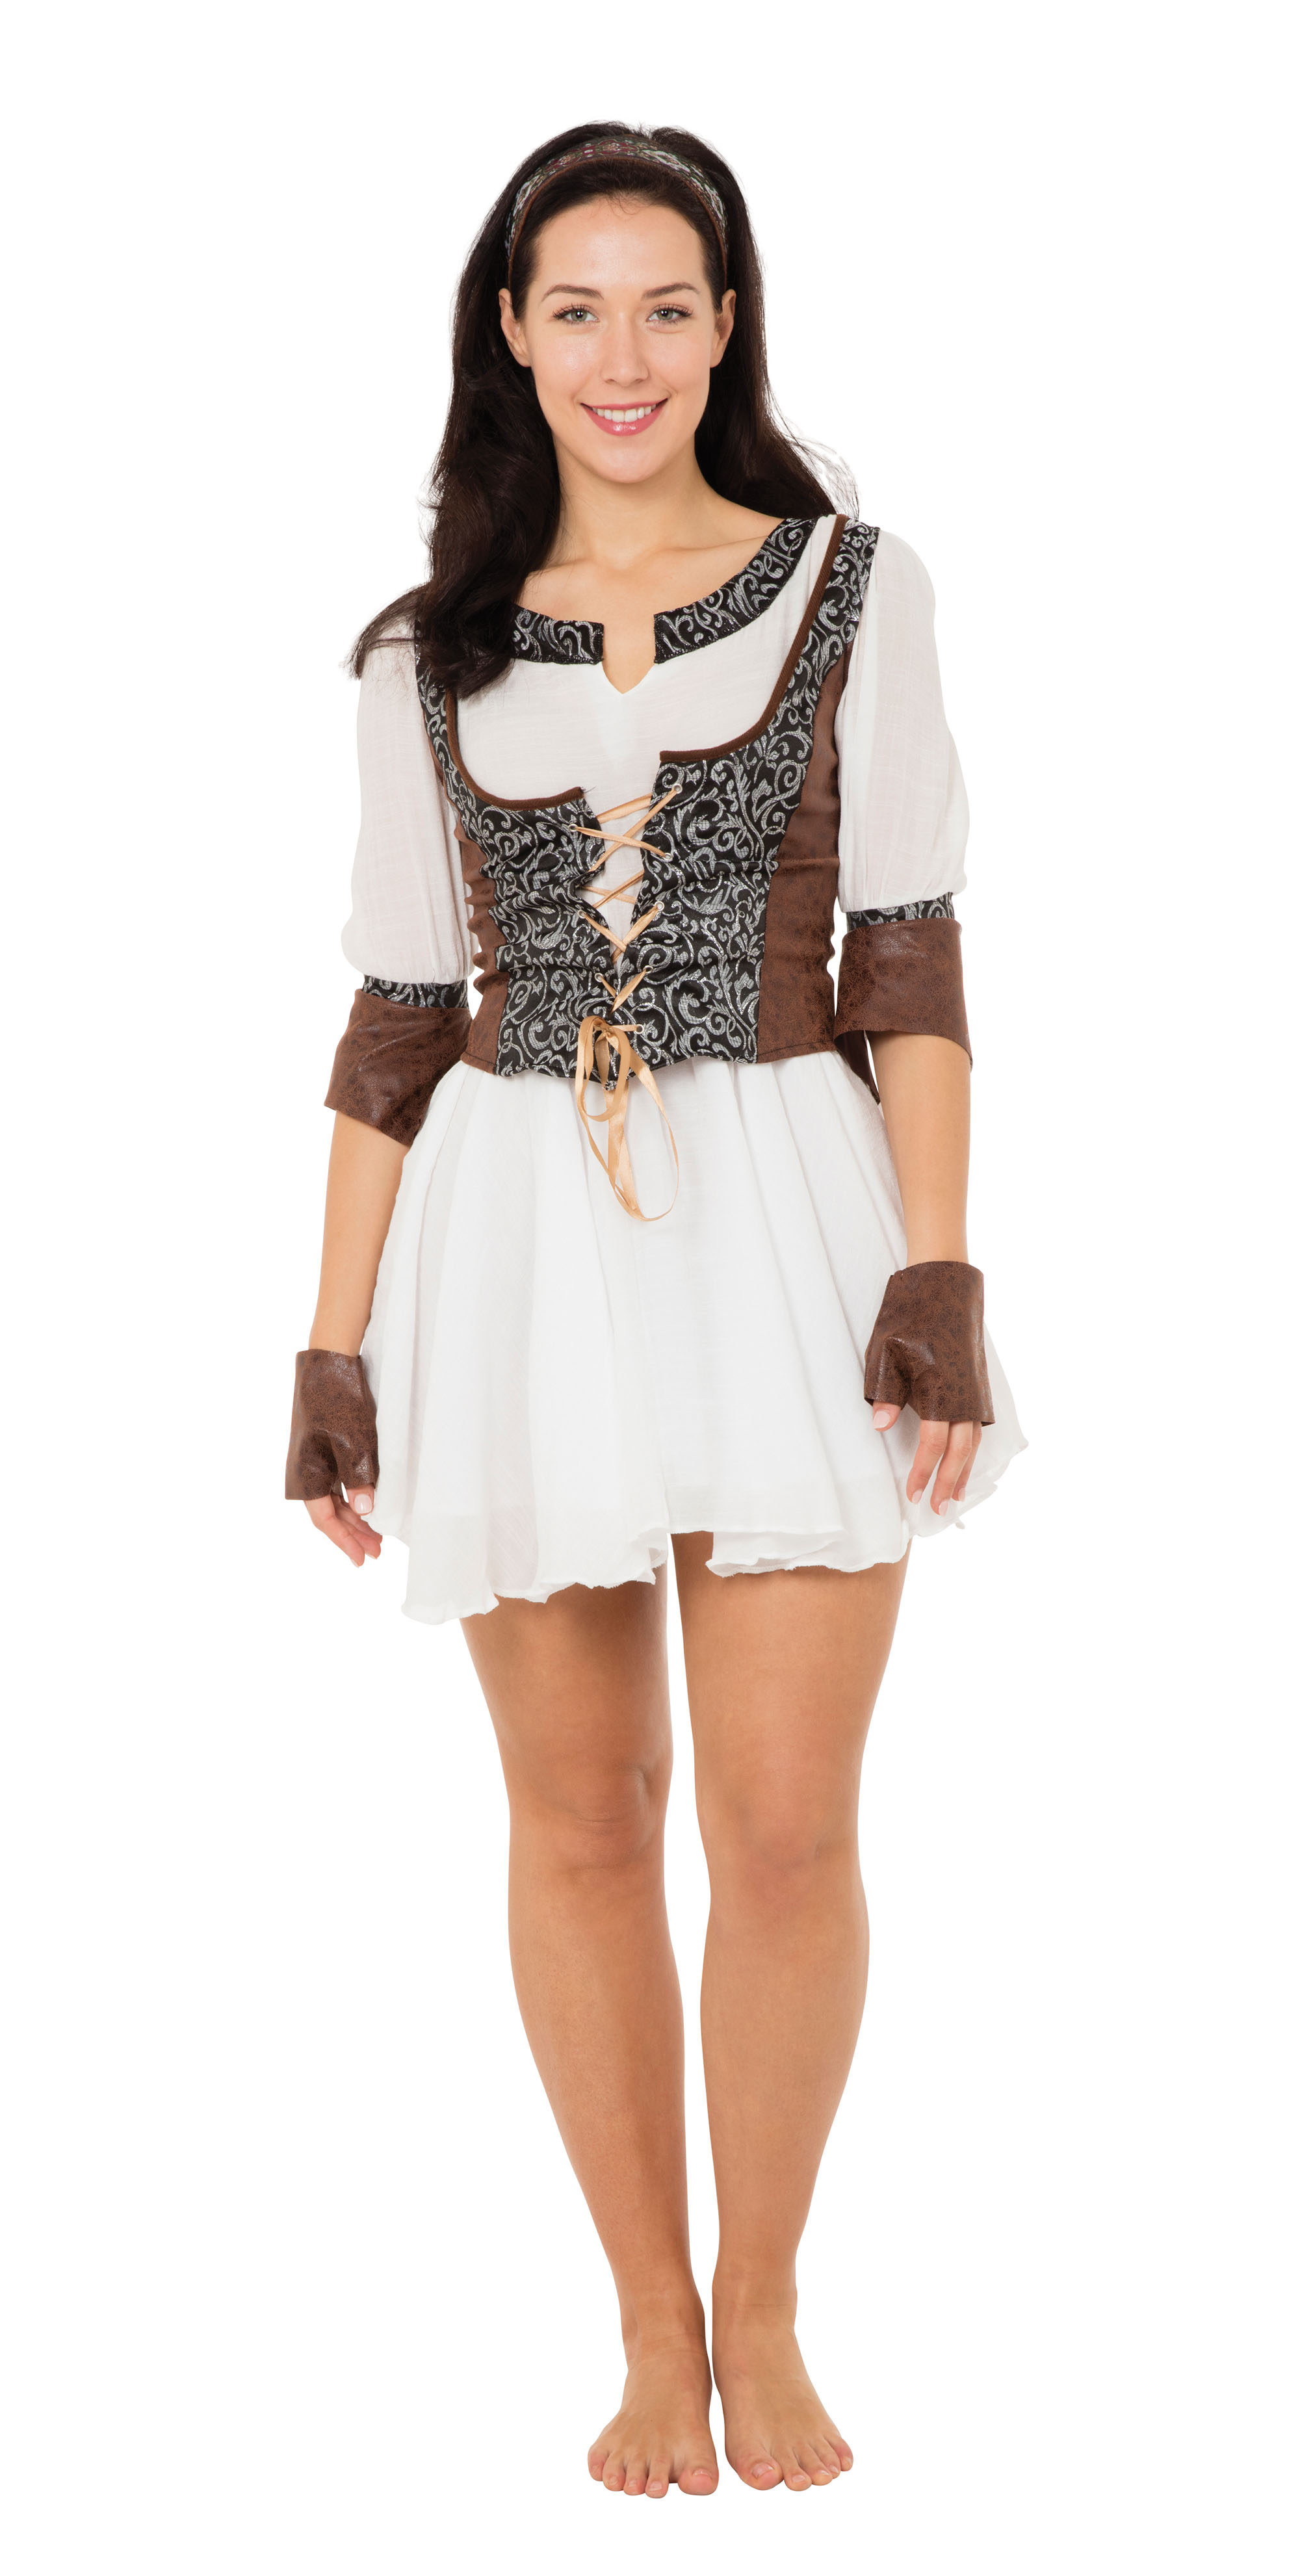 Ladies Womens Medieval Huntress Fancy Dress Costume Outfit UK 10-14